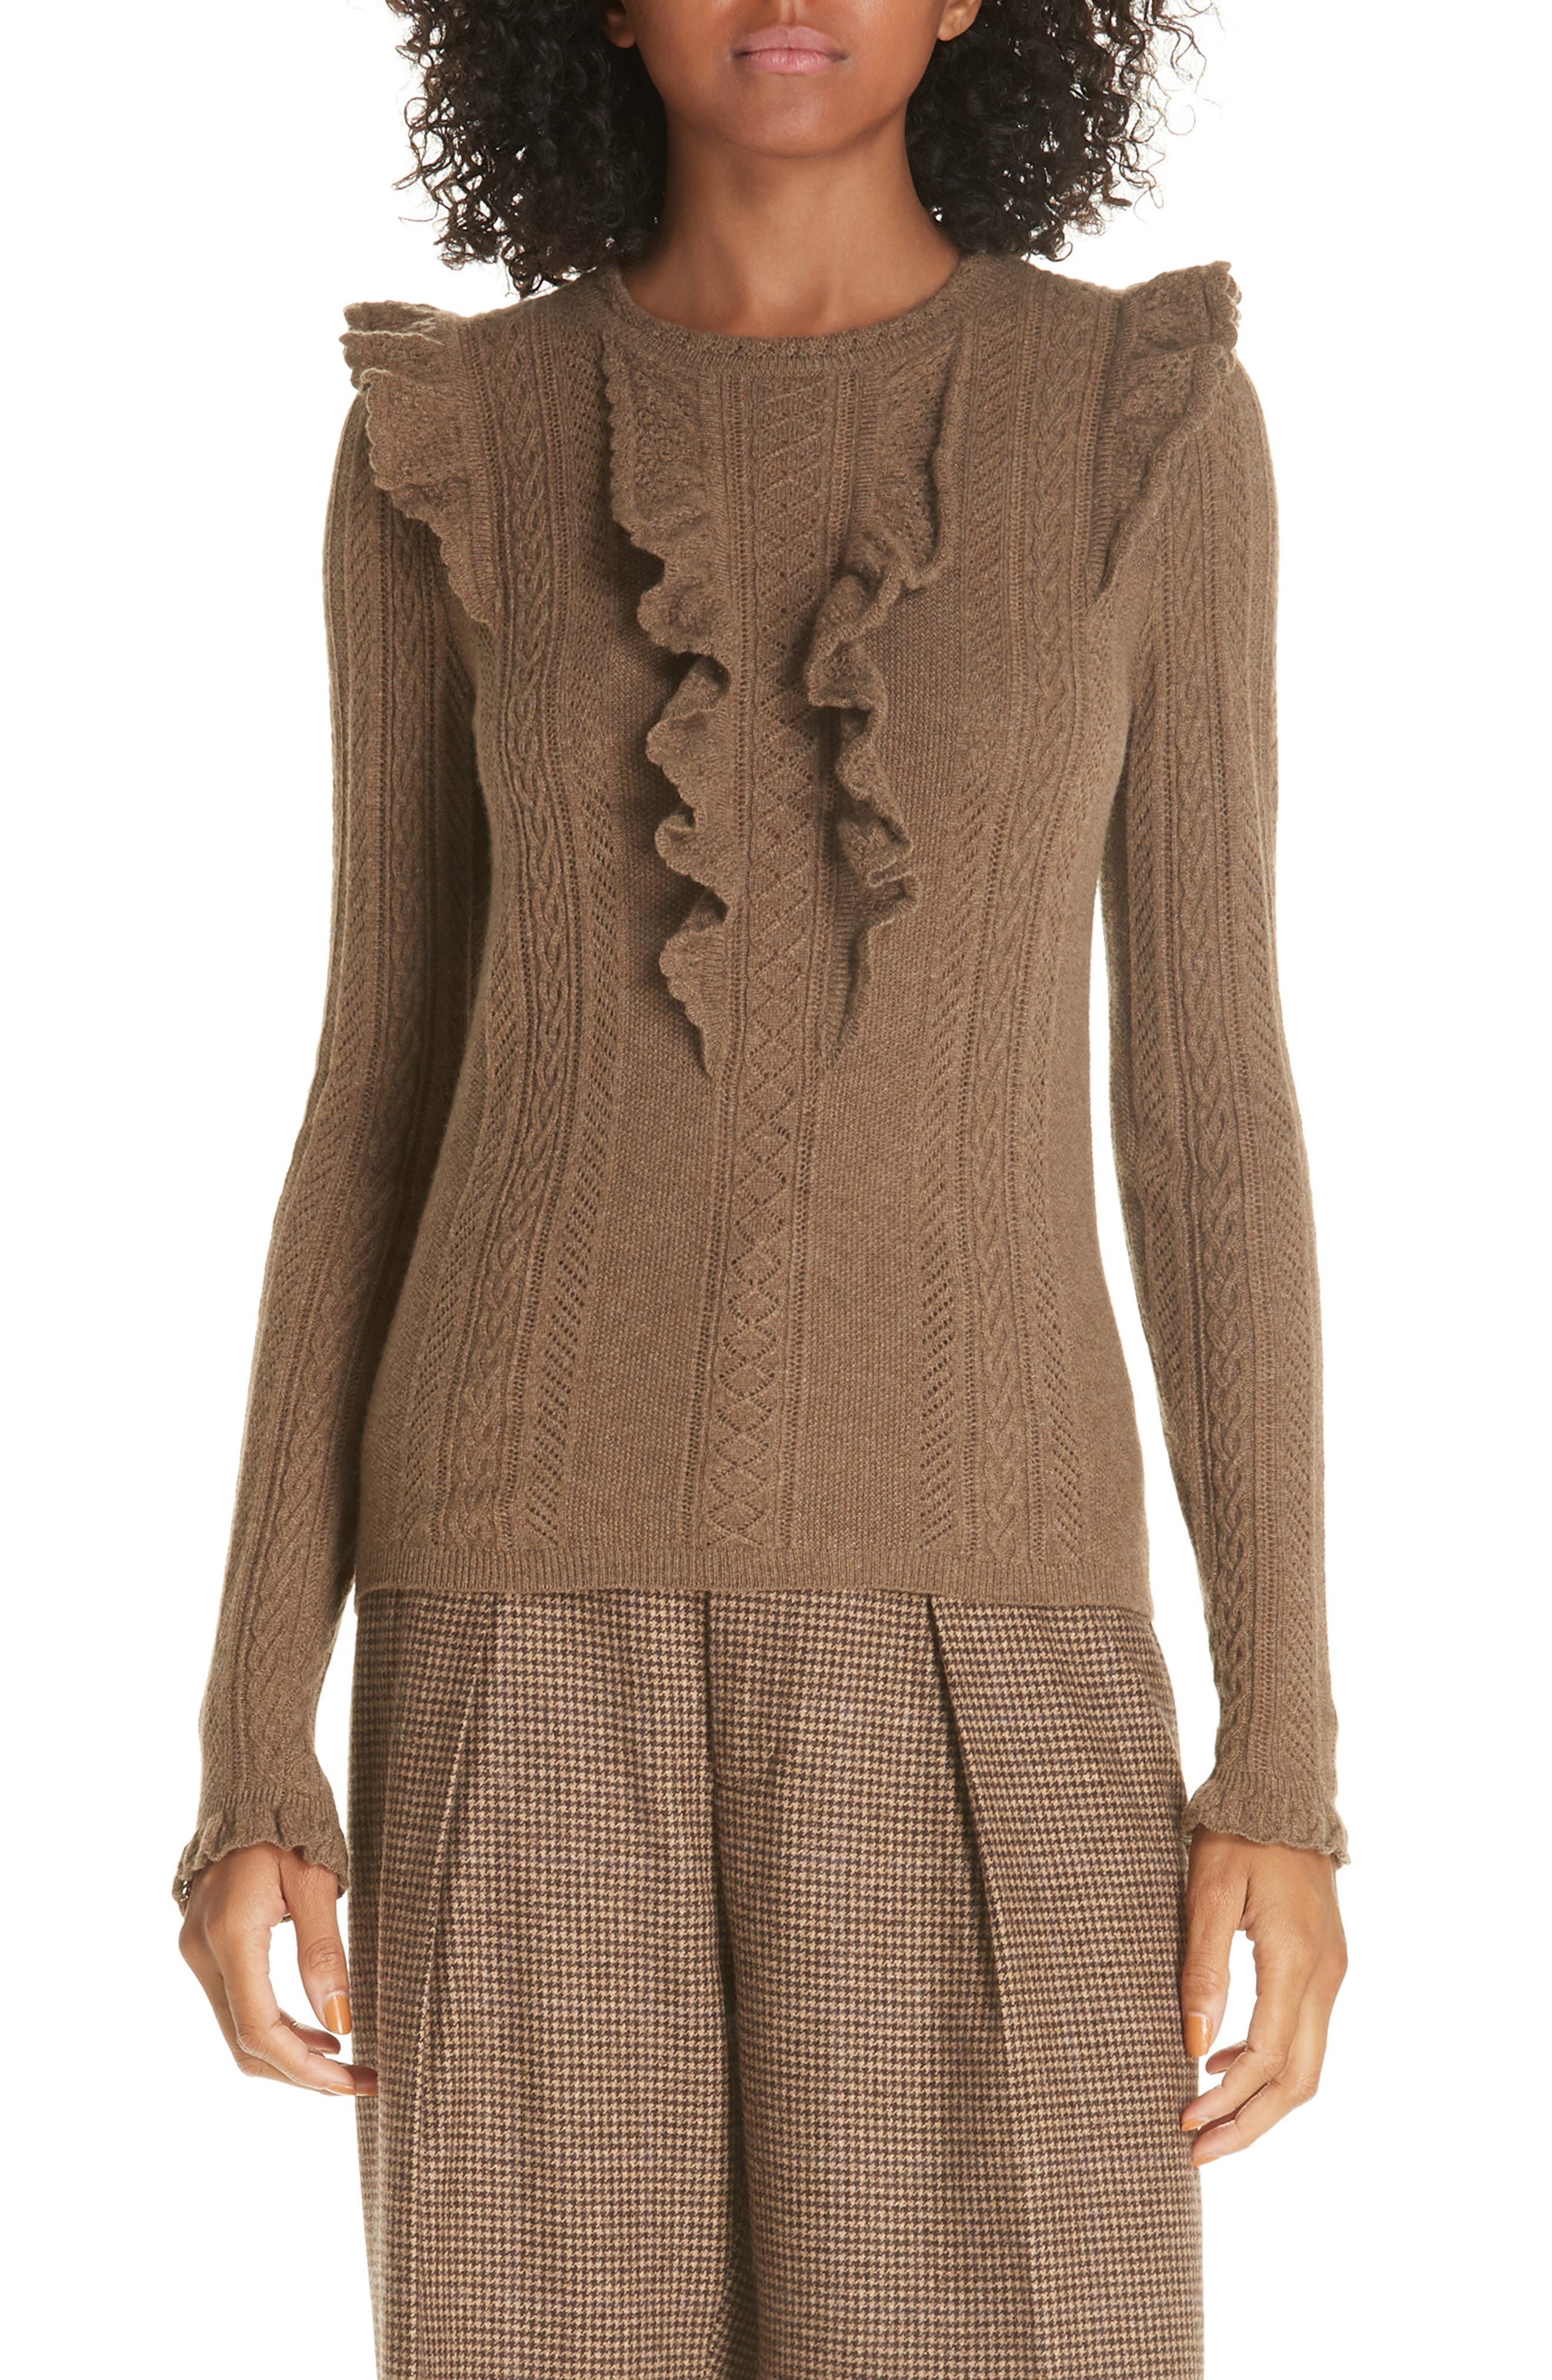 Ruffle Pointelle Sweater,                             Main thumbnail 1, color,                             LIGHT BROWN HEATHER